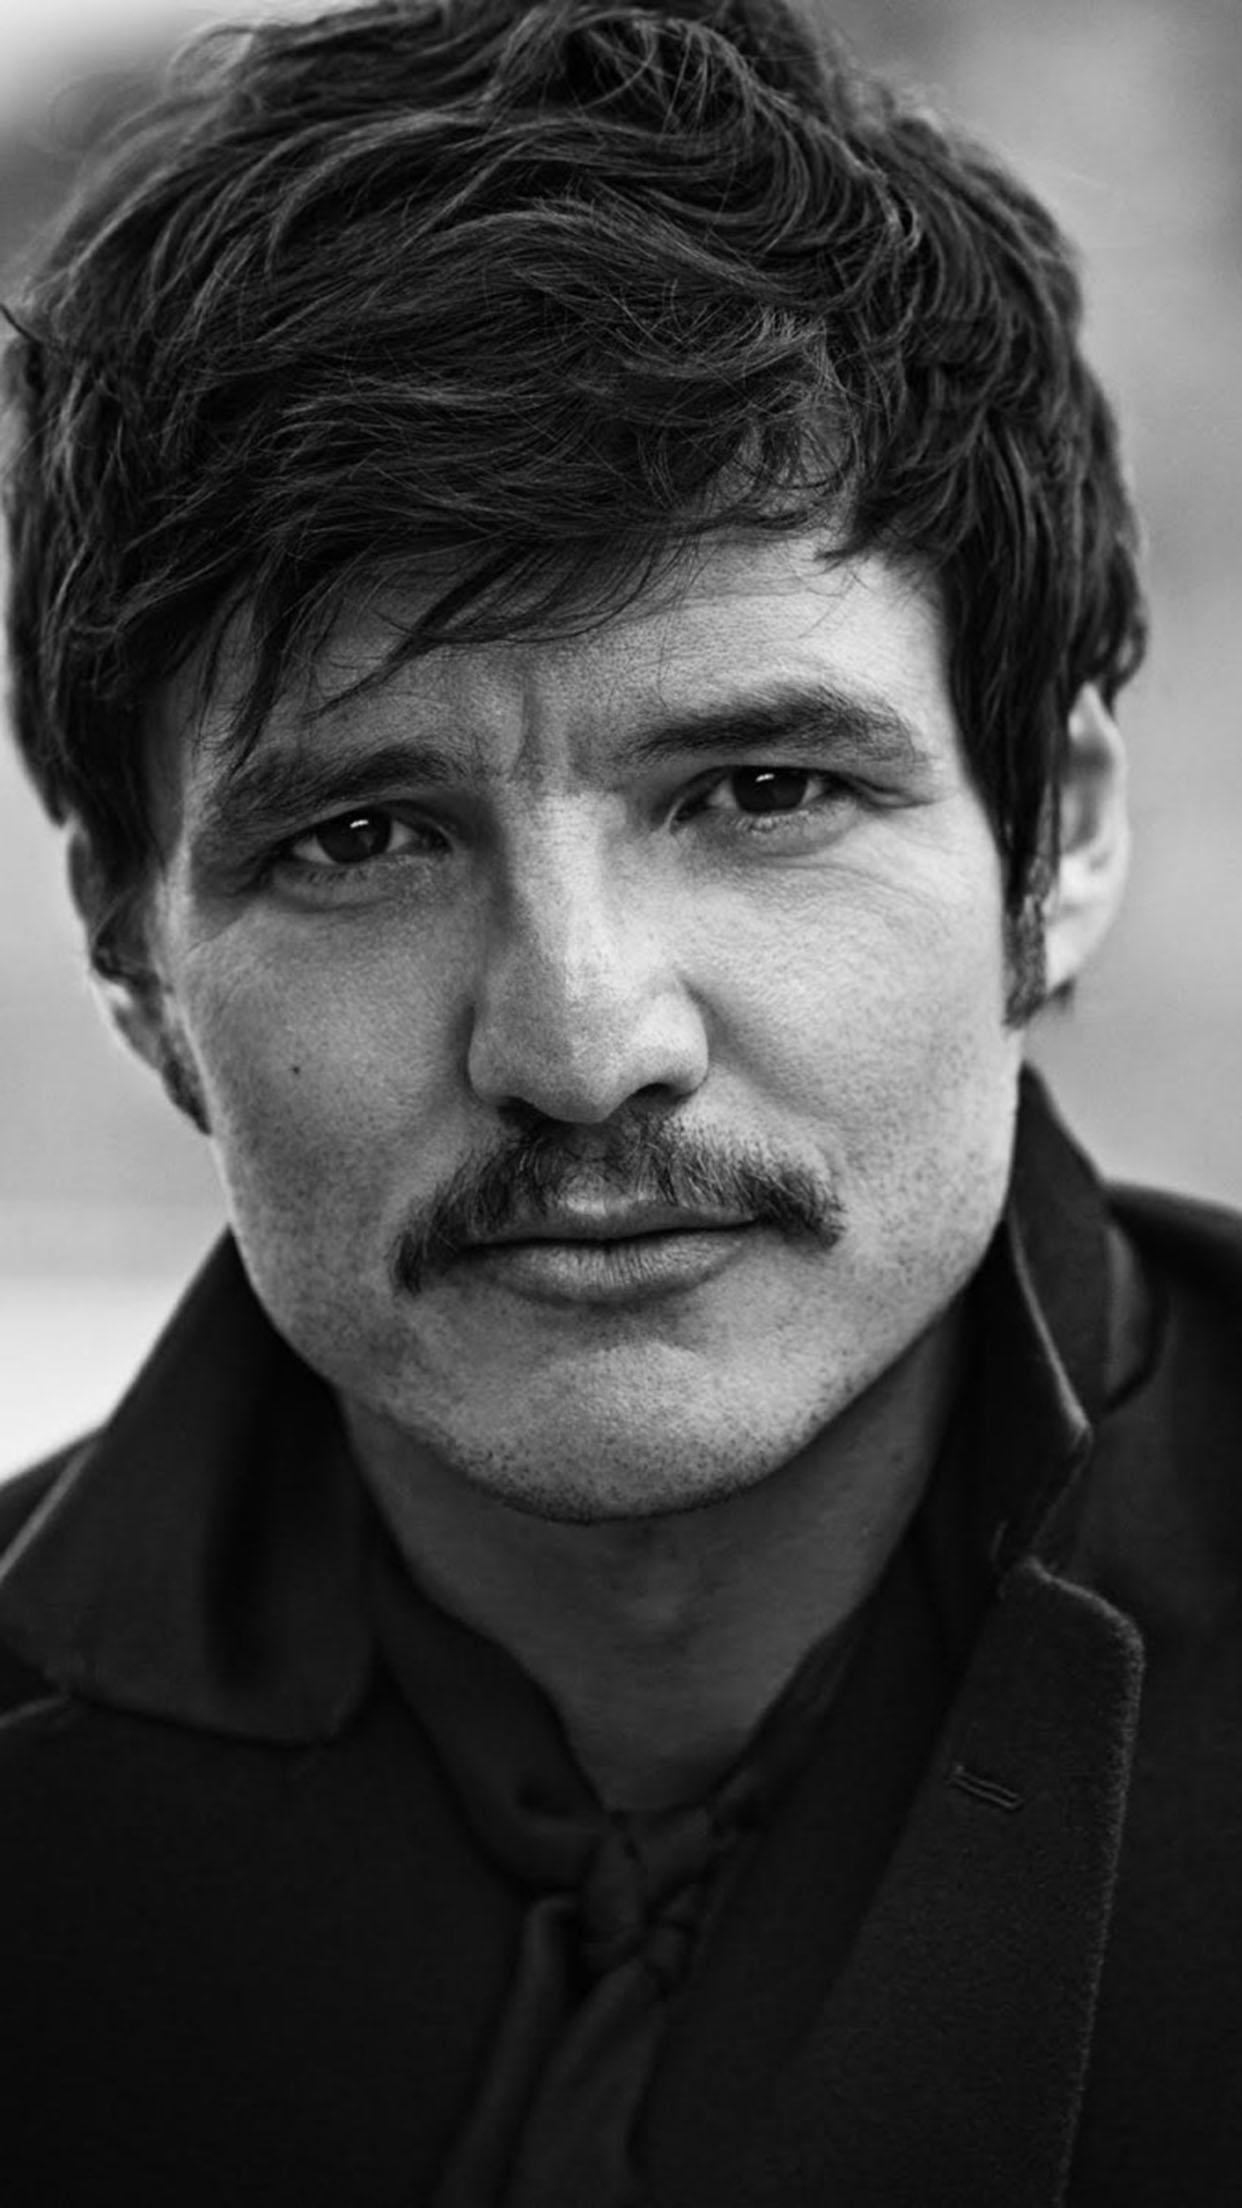 Black N White Girl Wallpaper Pedro Pascal Wallpaper For Iphone X 8 7 6 Free